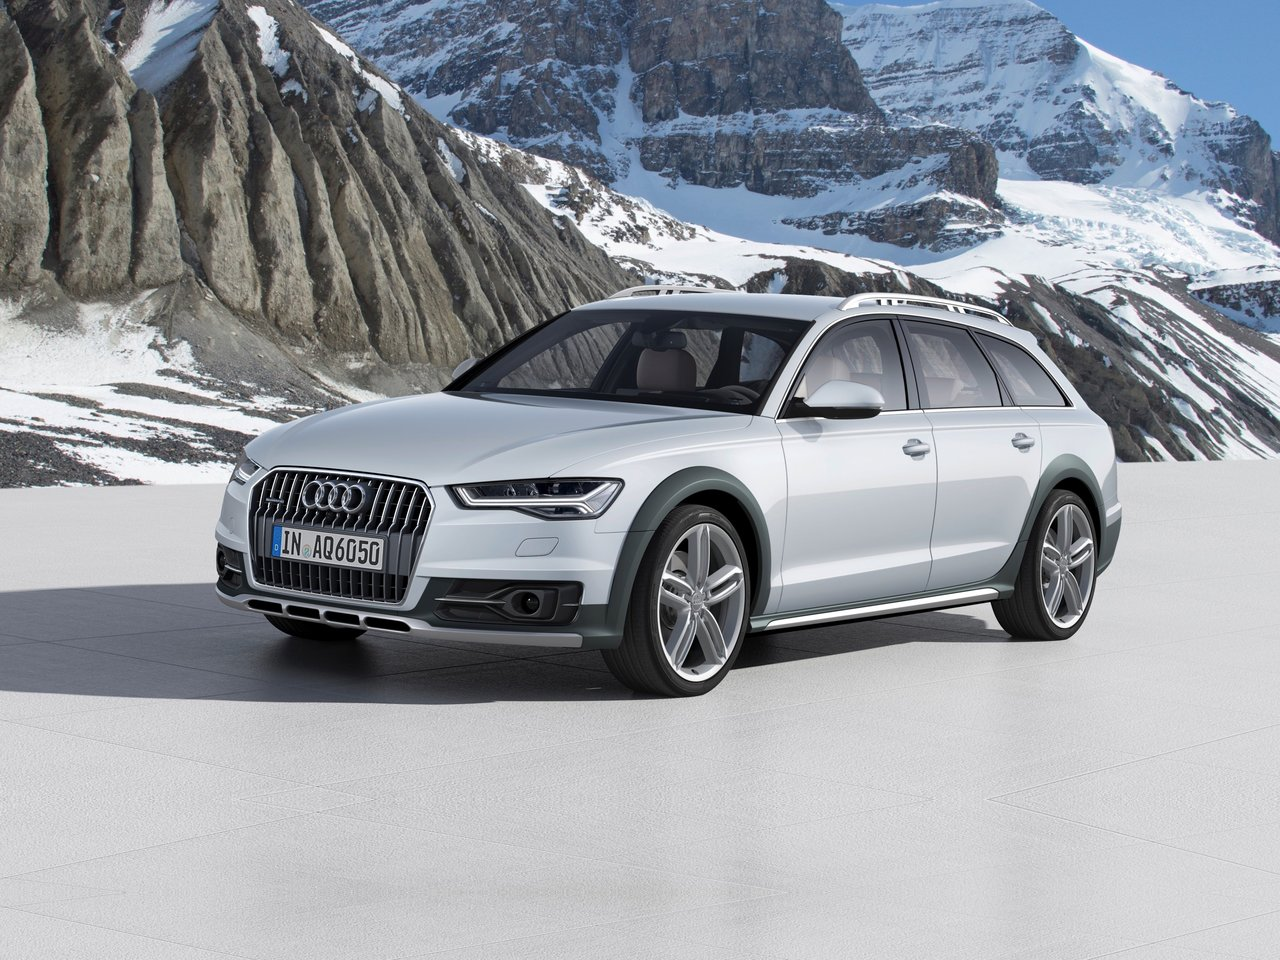 audi a6 allroad quattro 4g c7 3 0 tdi v6 245 hp. Black Bedroom Furniture Sets. Home Design Ideas